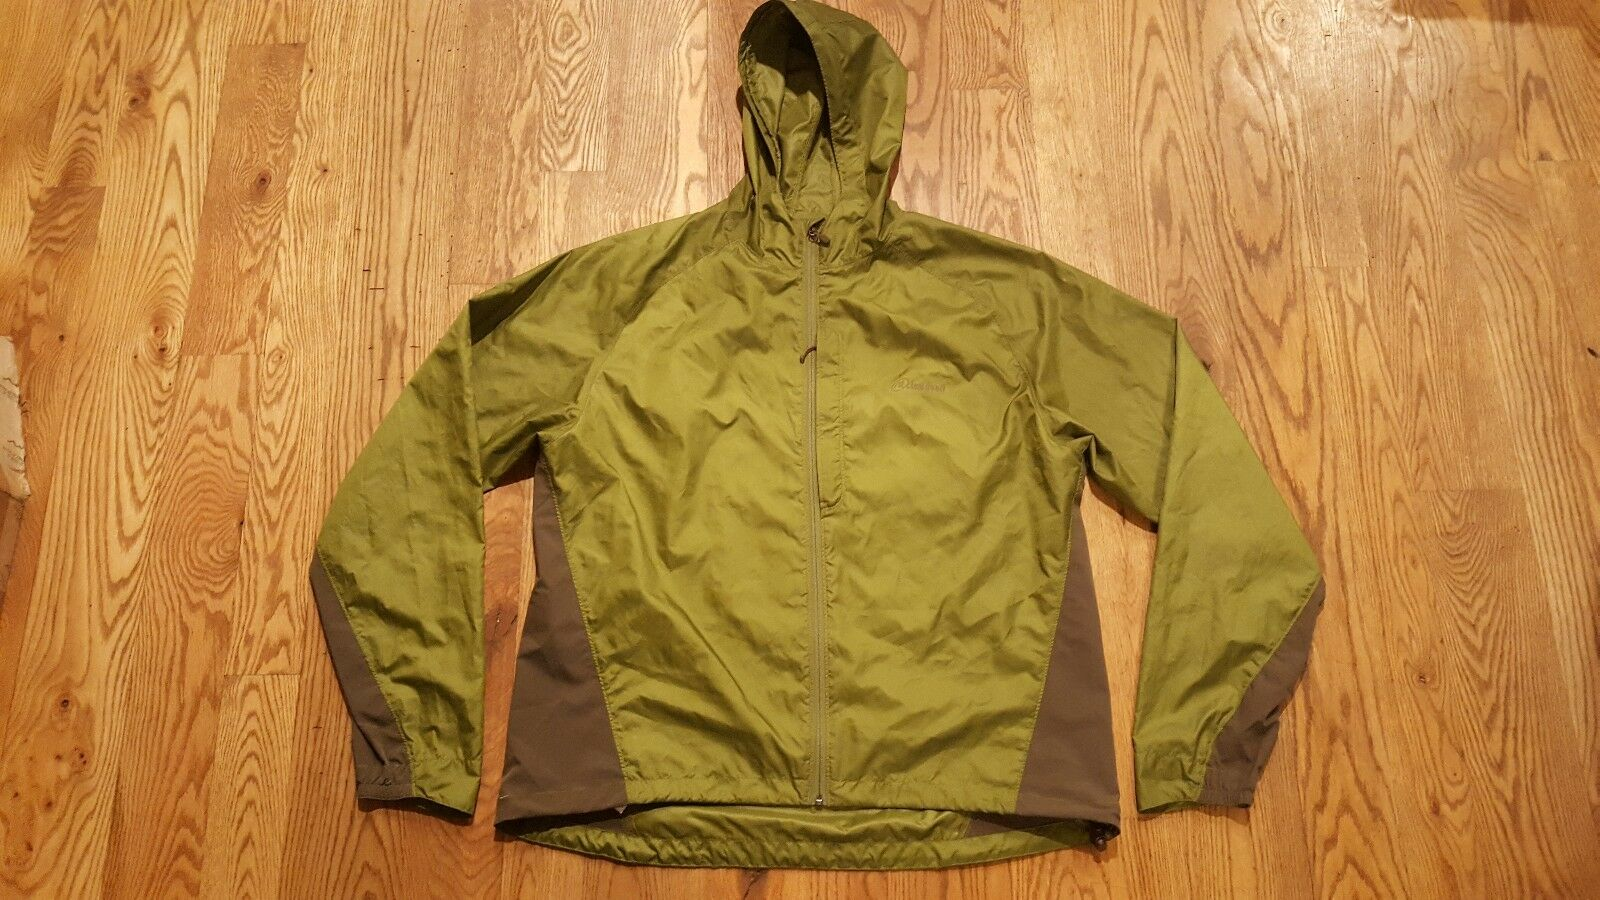 RARE Cloudveil Hooded jacke - herren XL Grün HIKE RIDE ski Jackson hole euc